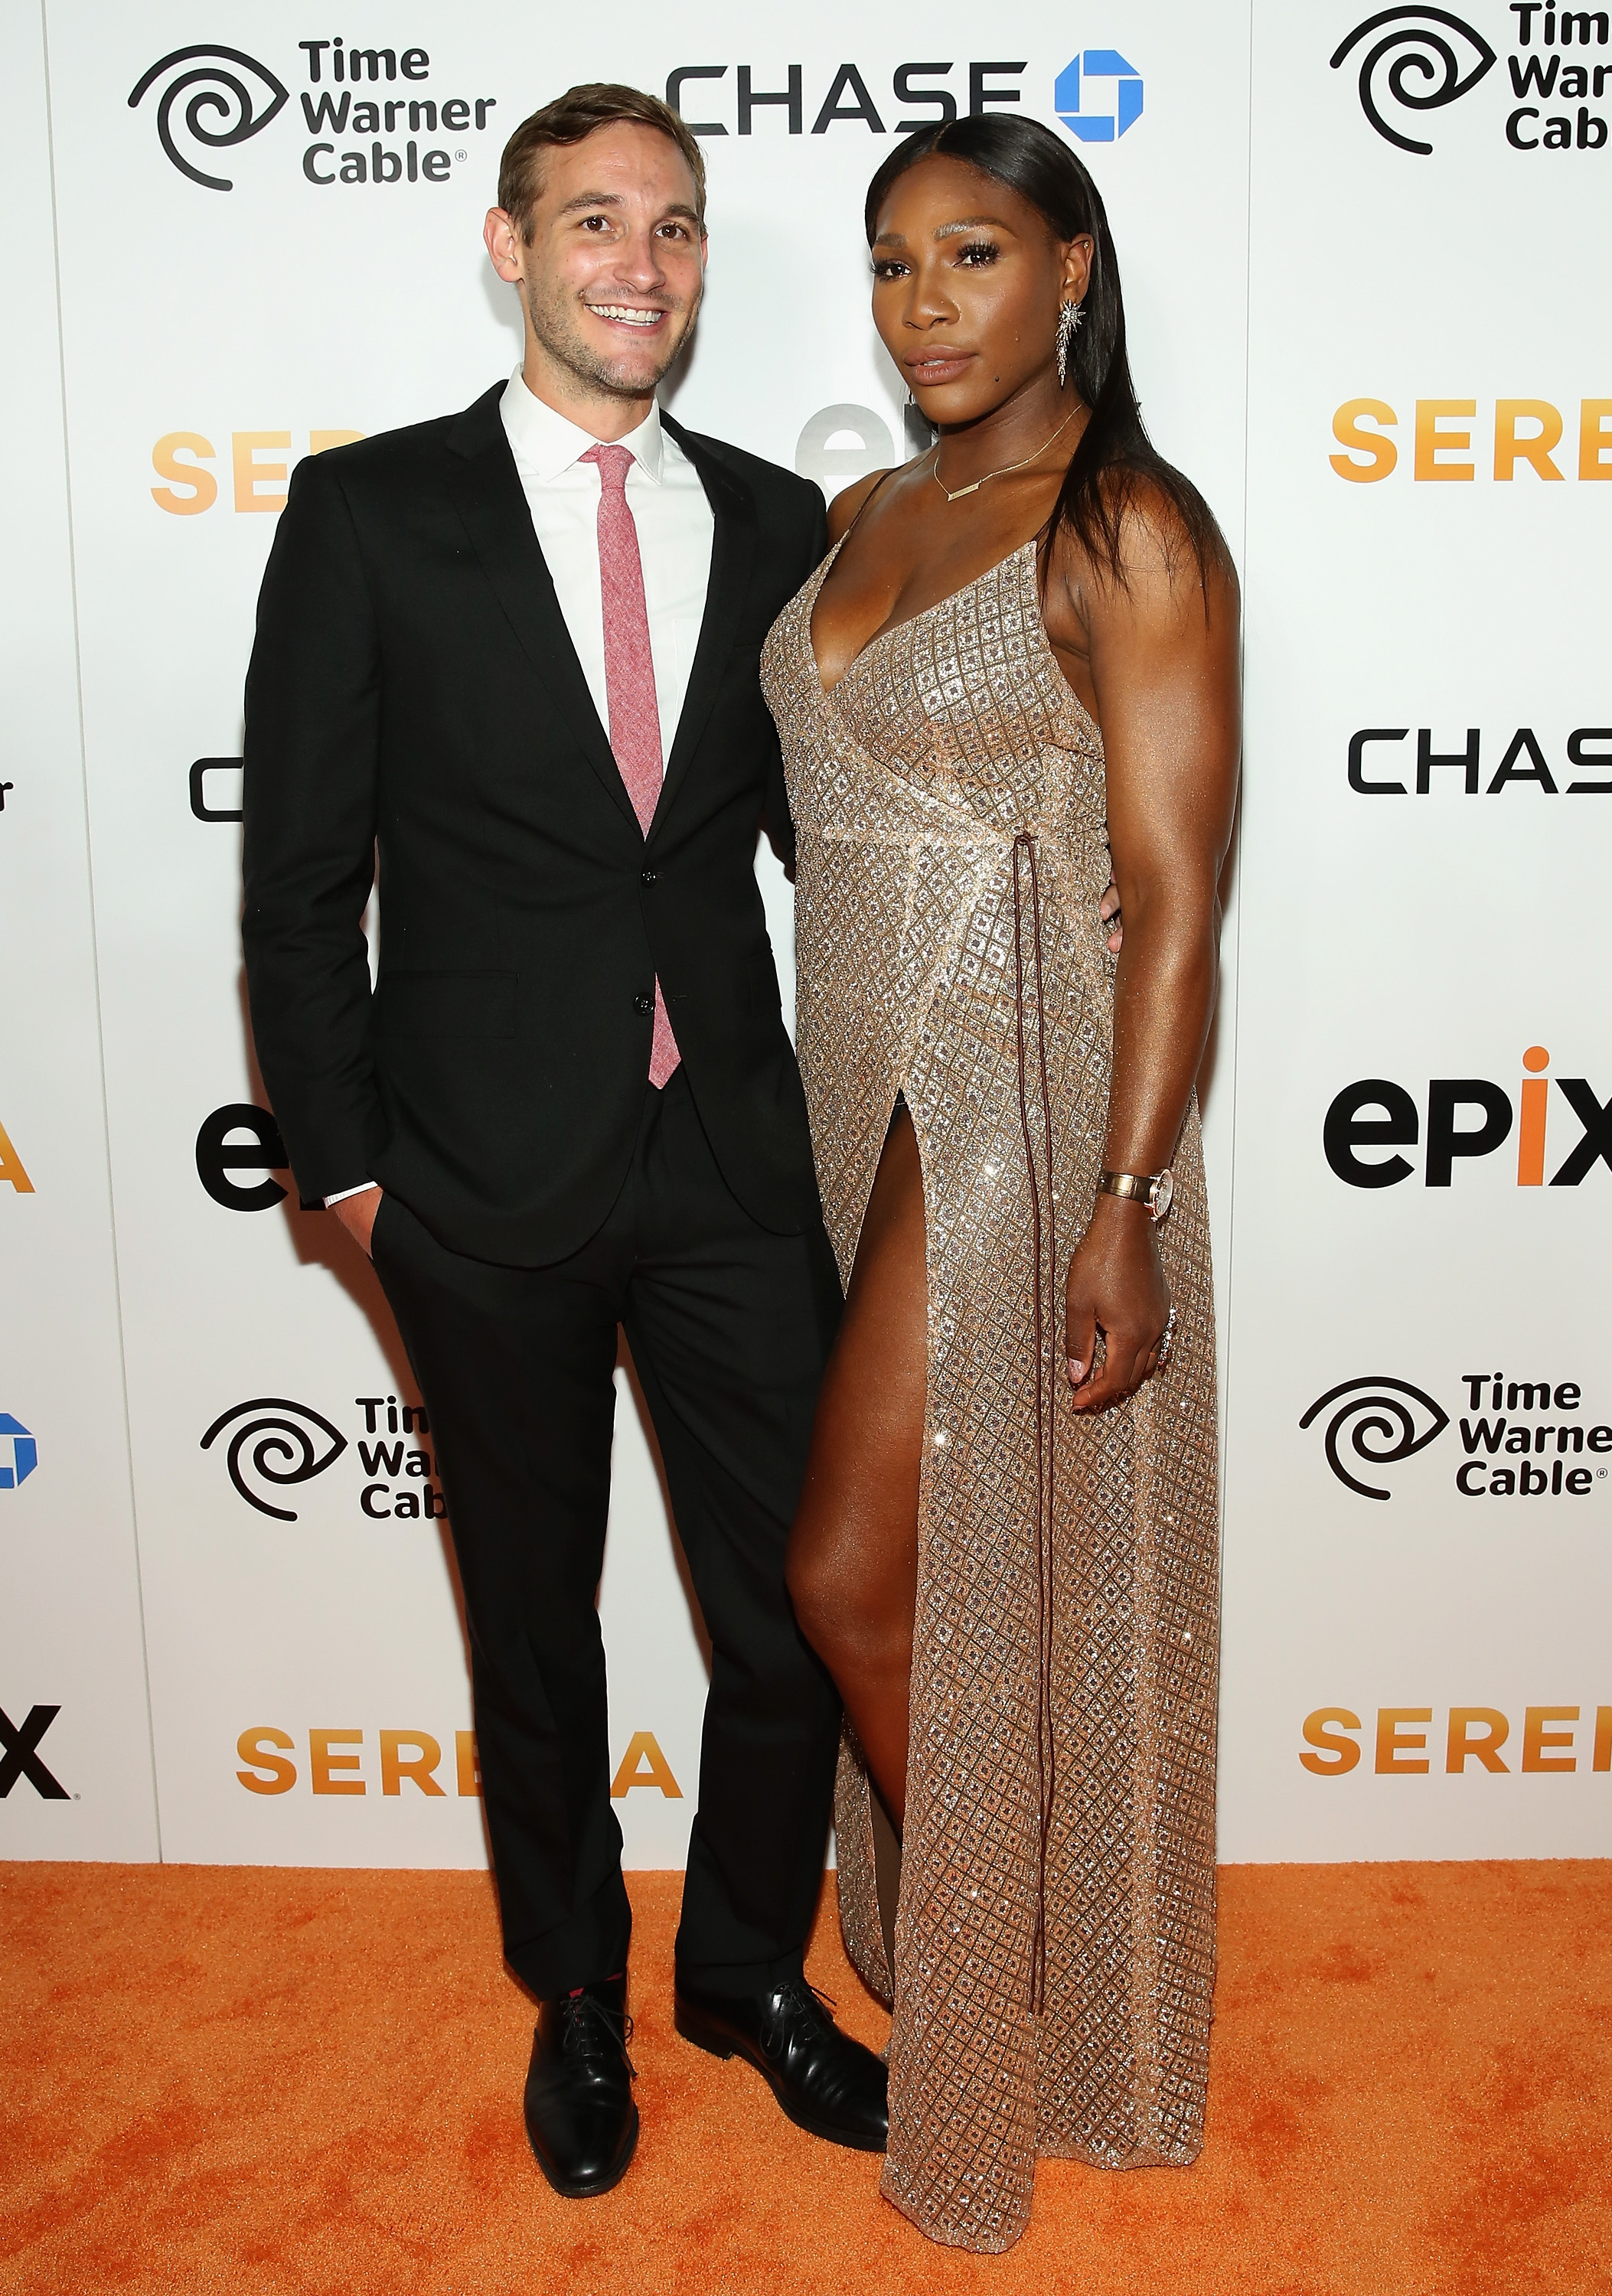 Serena Williams NY Premiere Event